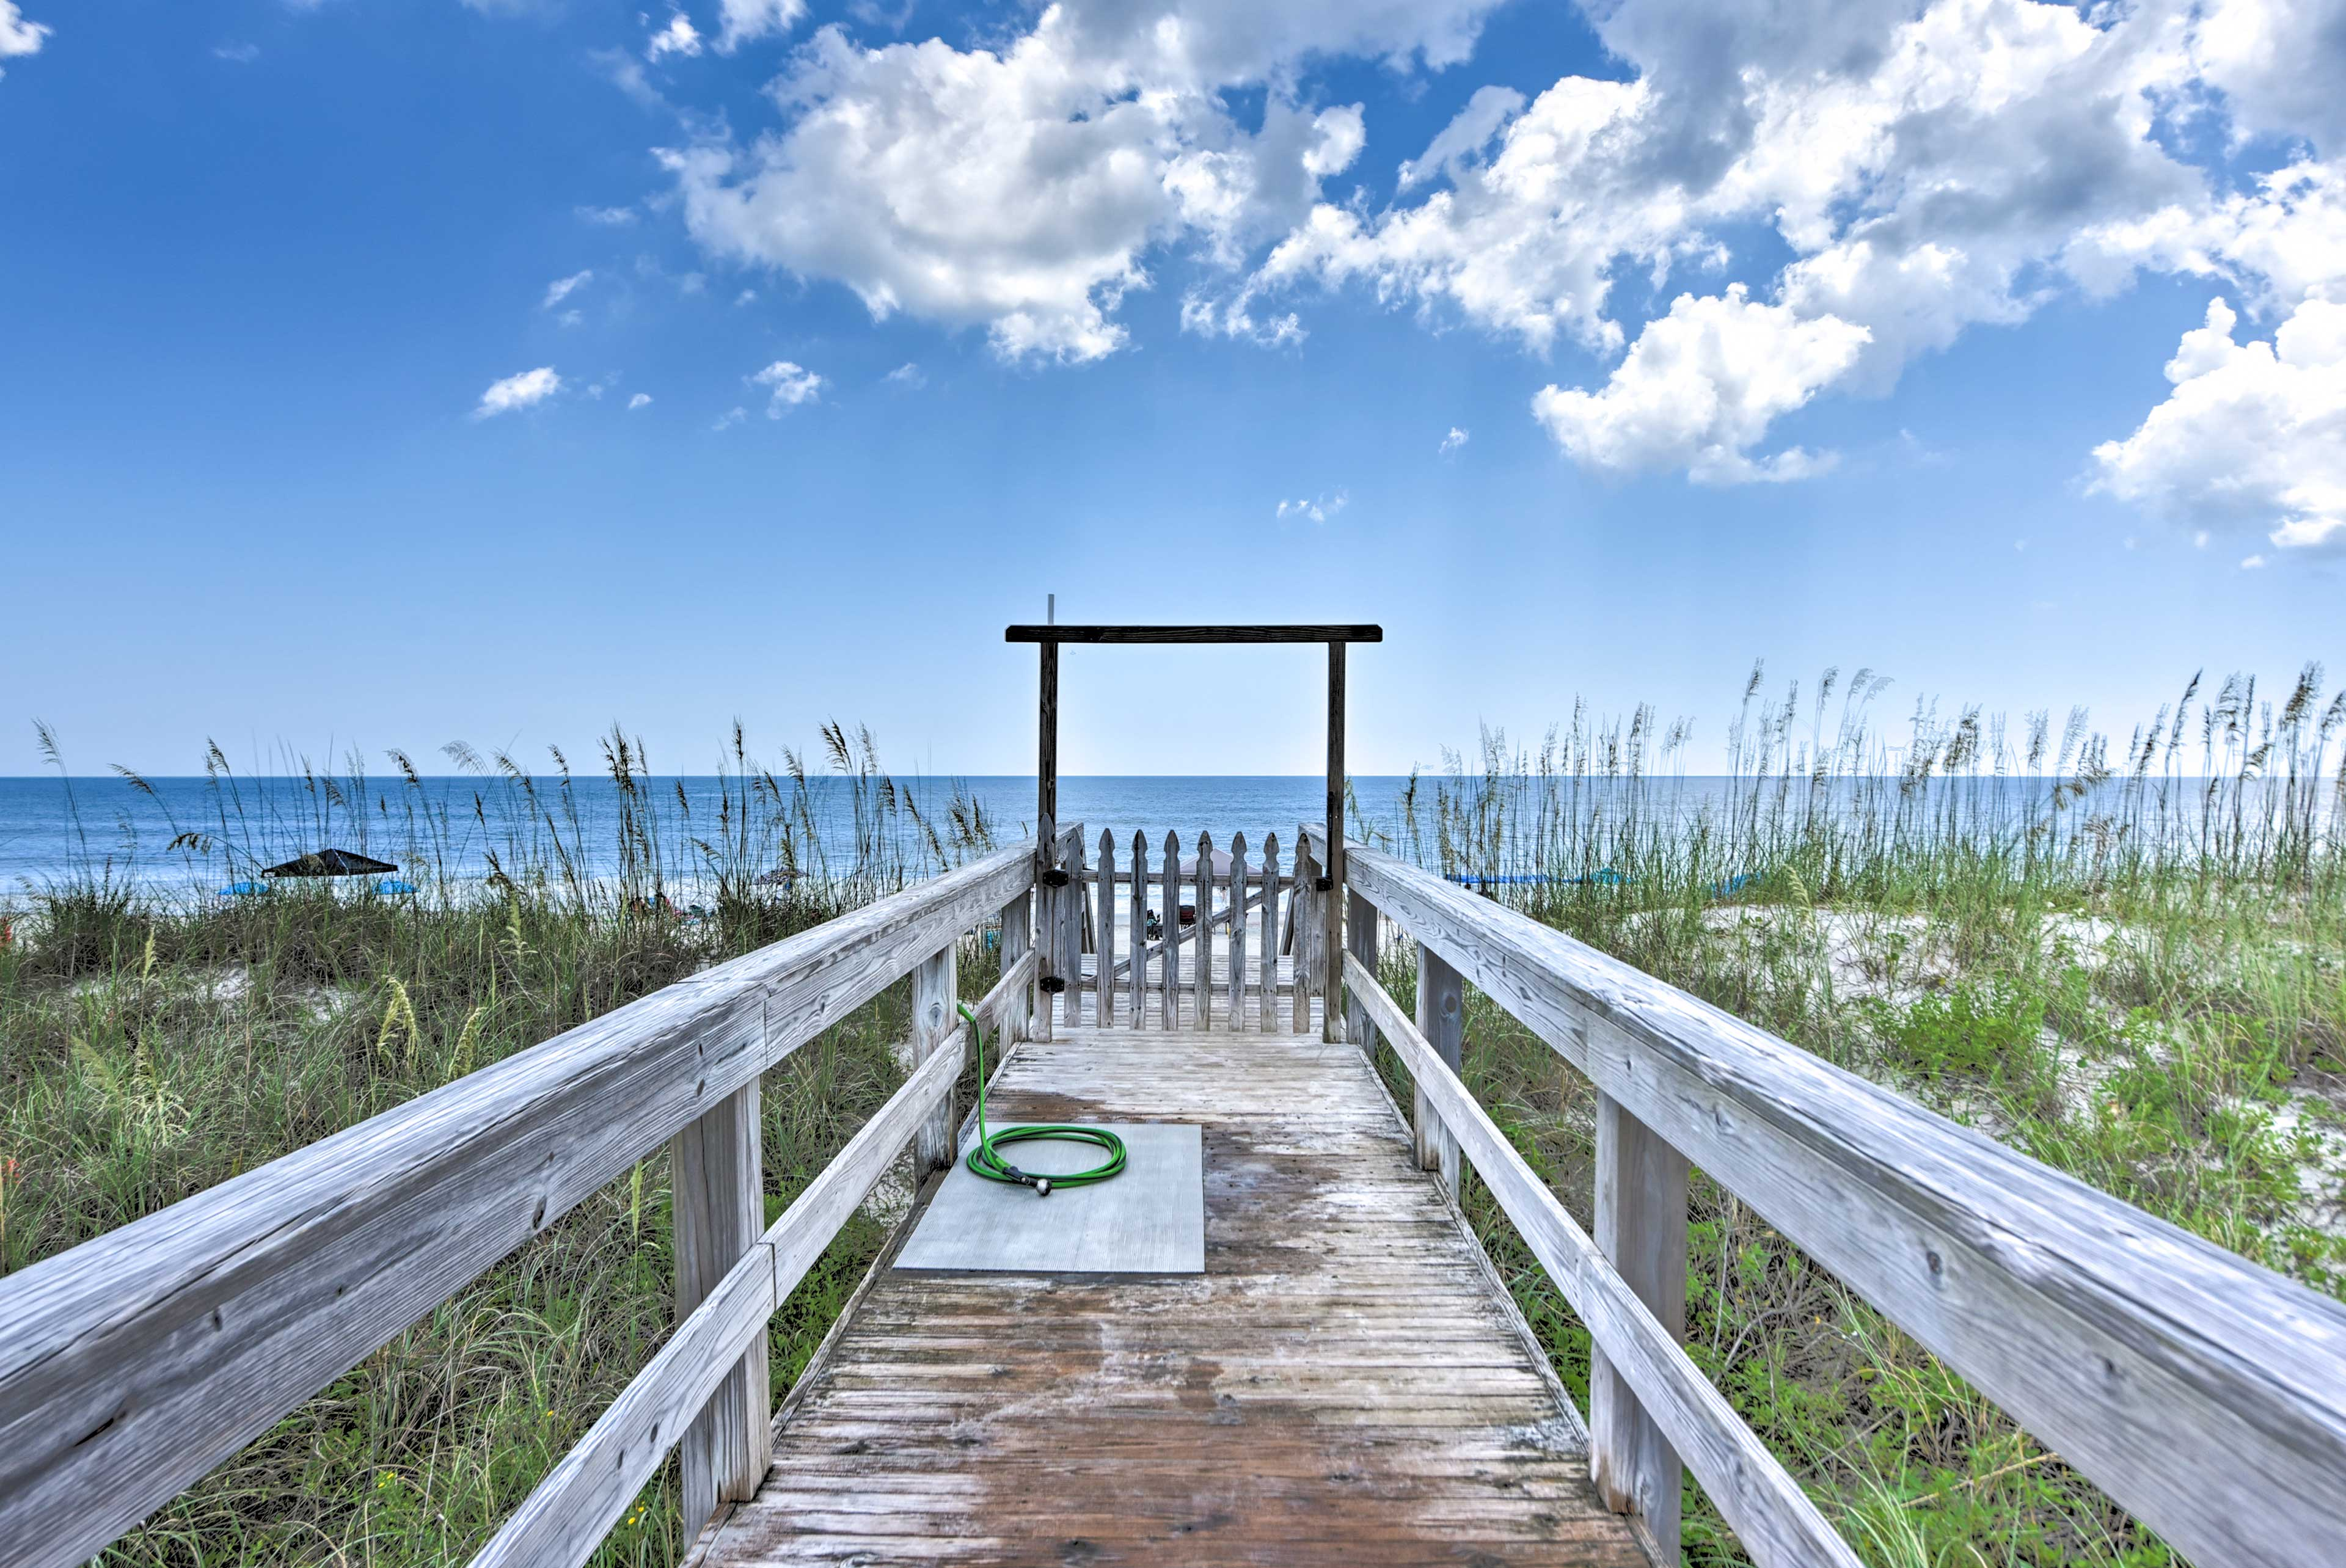 An exclusive community walkway leads you to the public beach area.